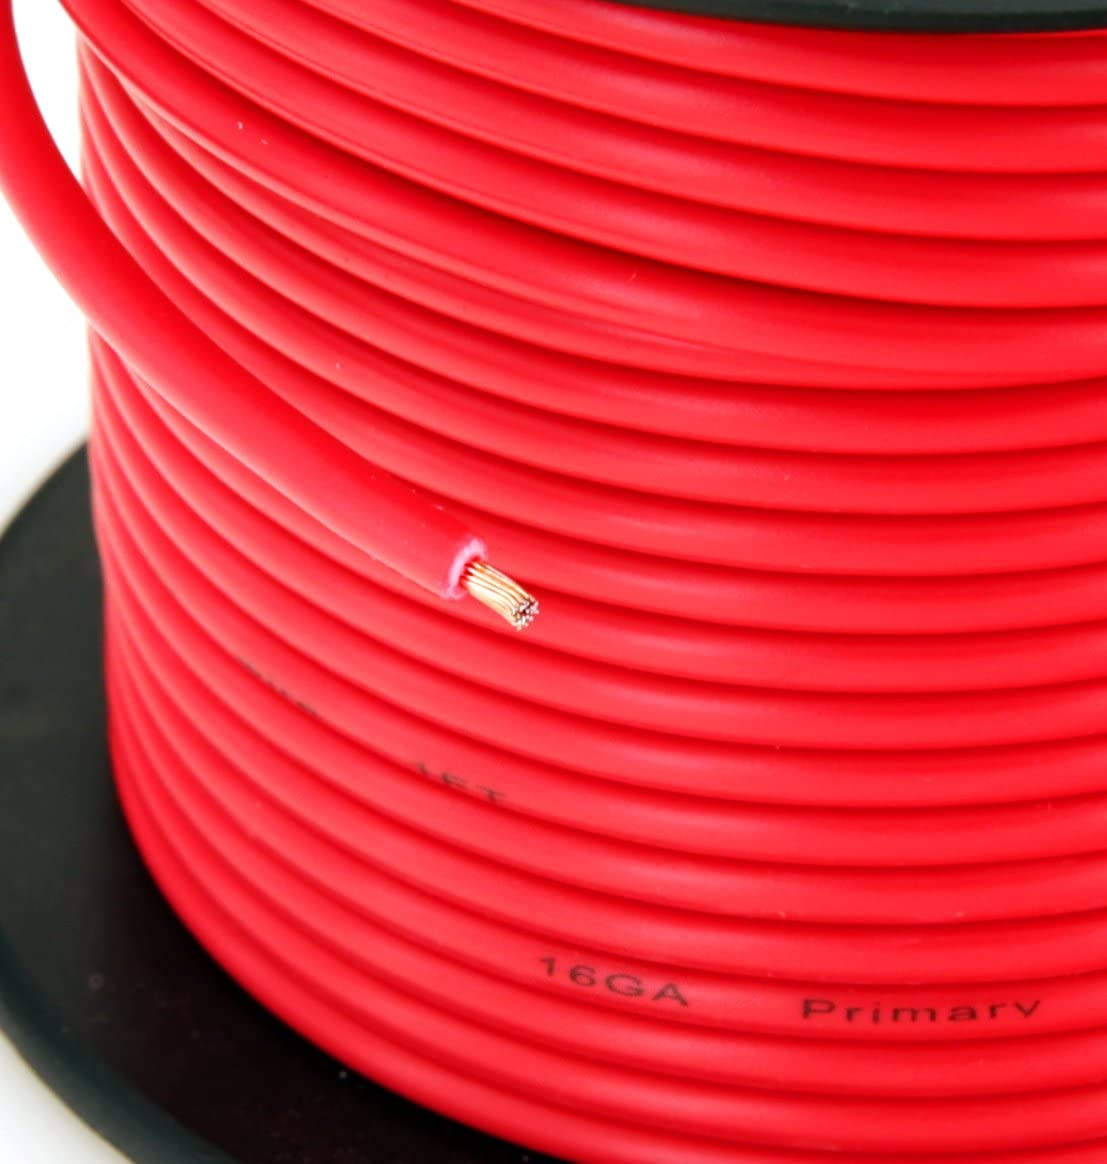 GS Power 16 Gauge Stranded Flexible Copper Clad Aluminum CCA Primary Automotive Wire for Car Stereo Amplifier 12 Volt Trailer Replacement Harness Hookup Wiring. 100 ft Red & 100 feet Black: Automotive